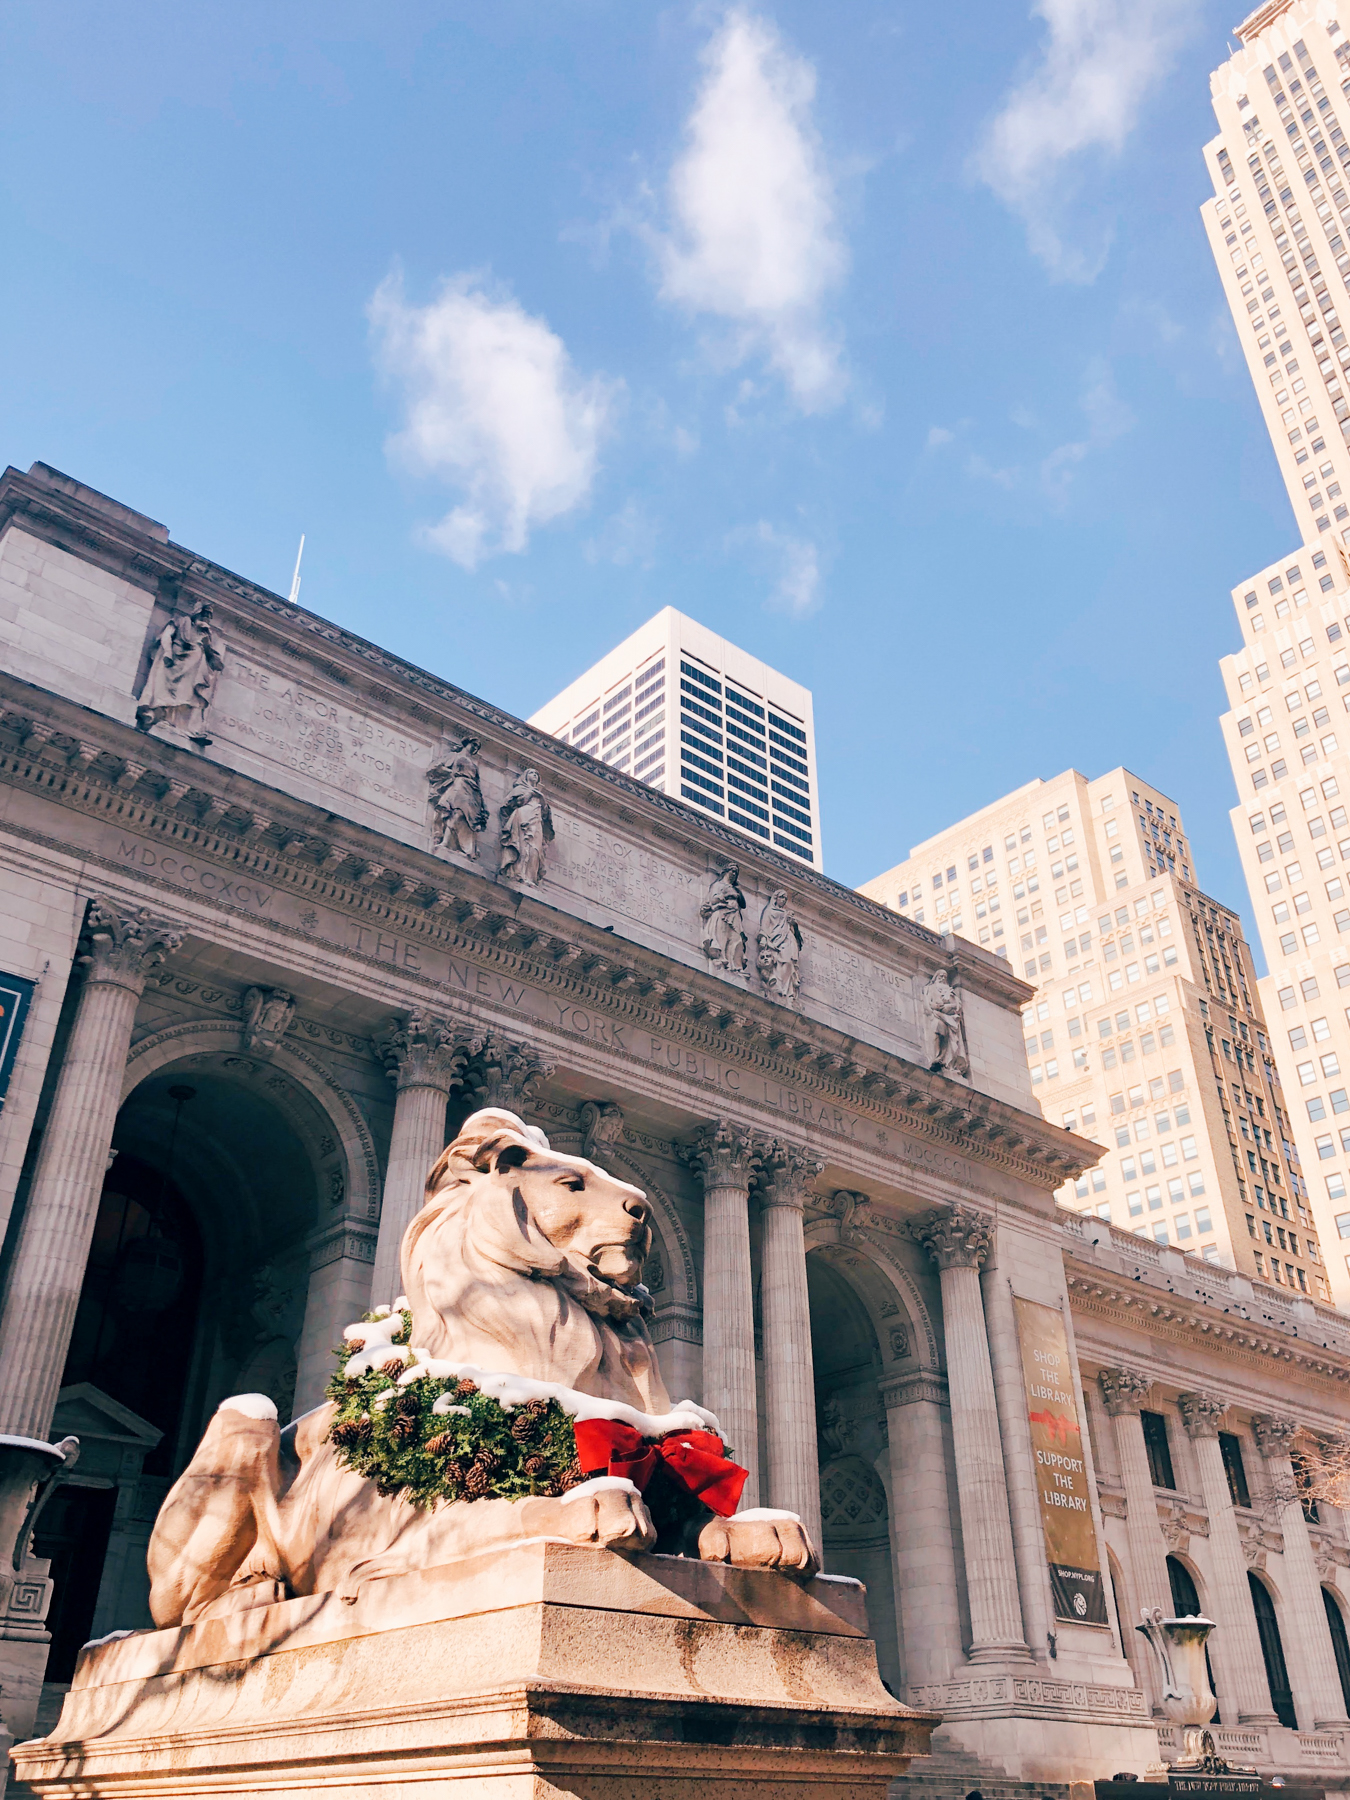 The famous lion statue outside of New York Public Library